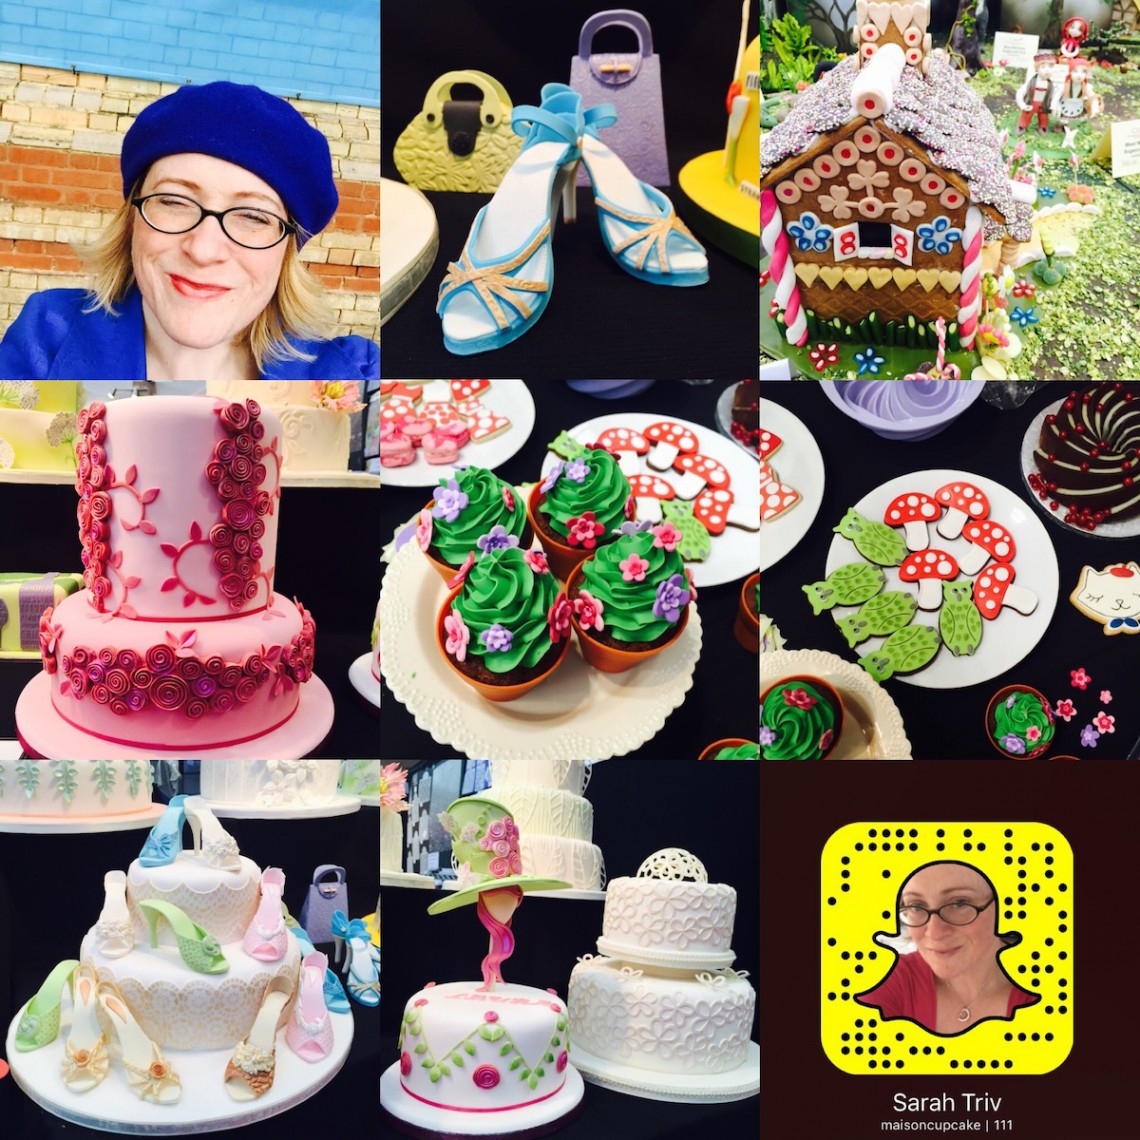 Cake International highlights on Snapchat with Maison Cupcake